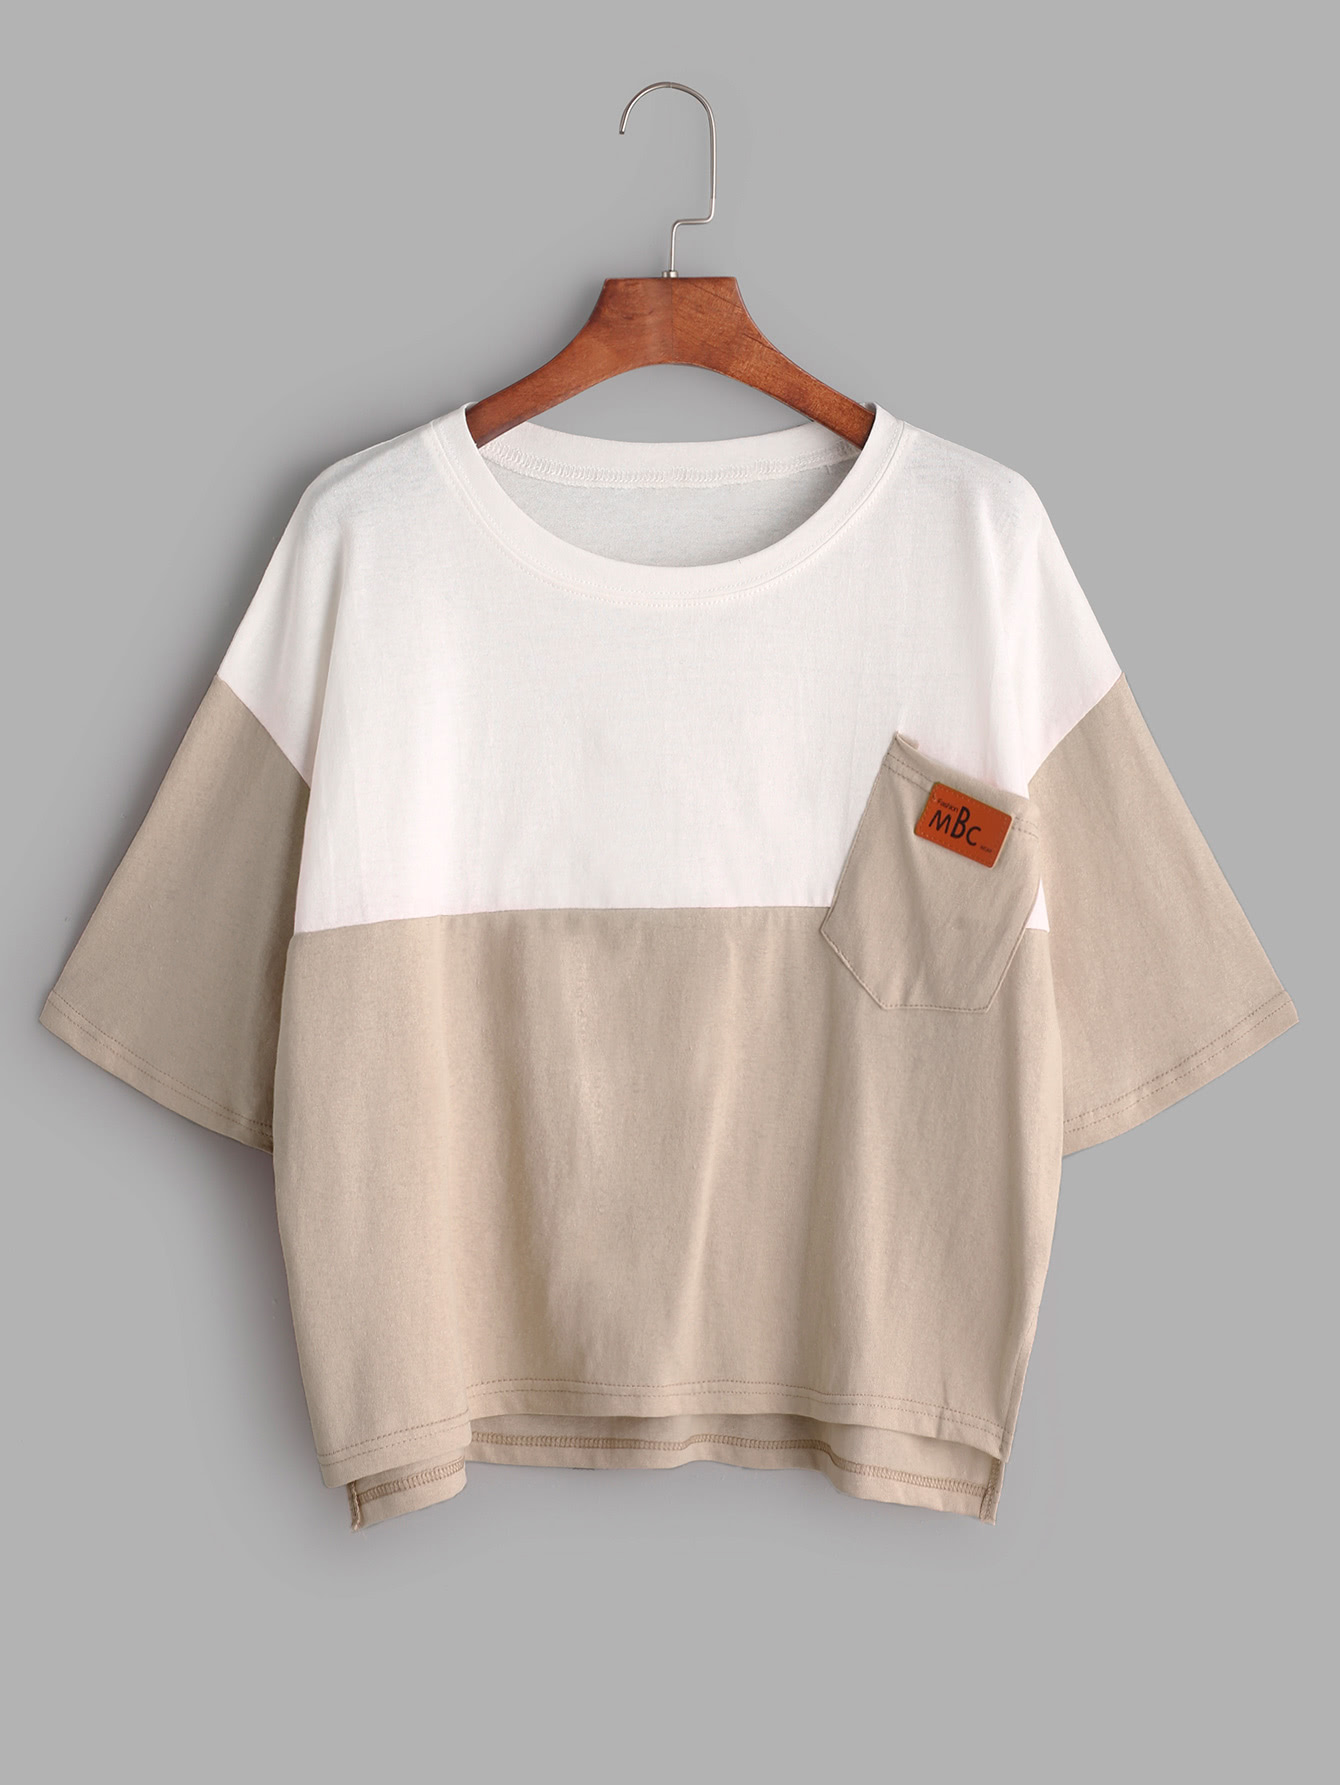 Color Block Slit Side High Low Tee With Chest Pocket ds202 low price pocket oscilloscope with color display